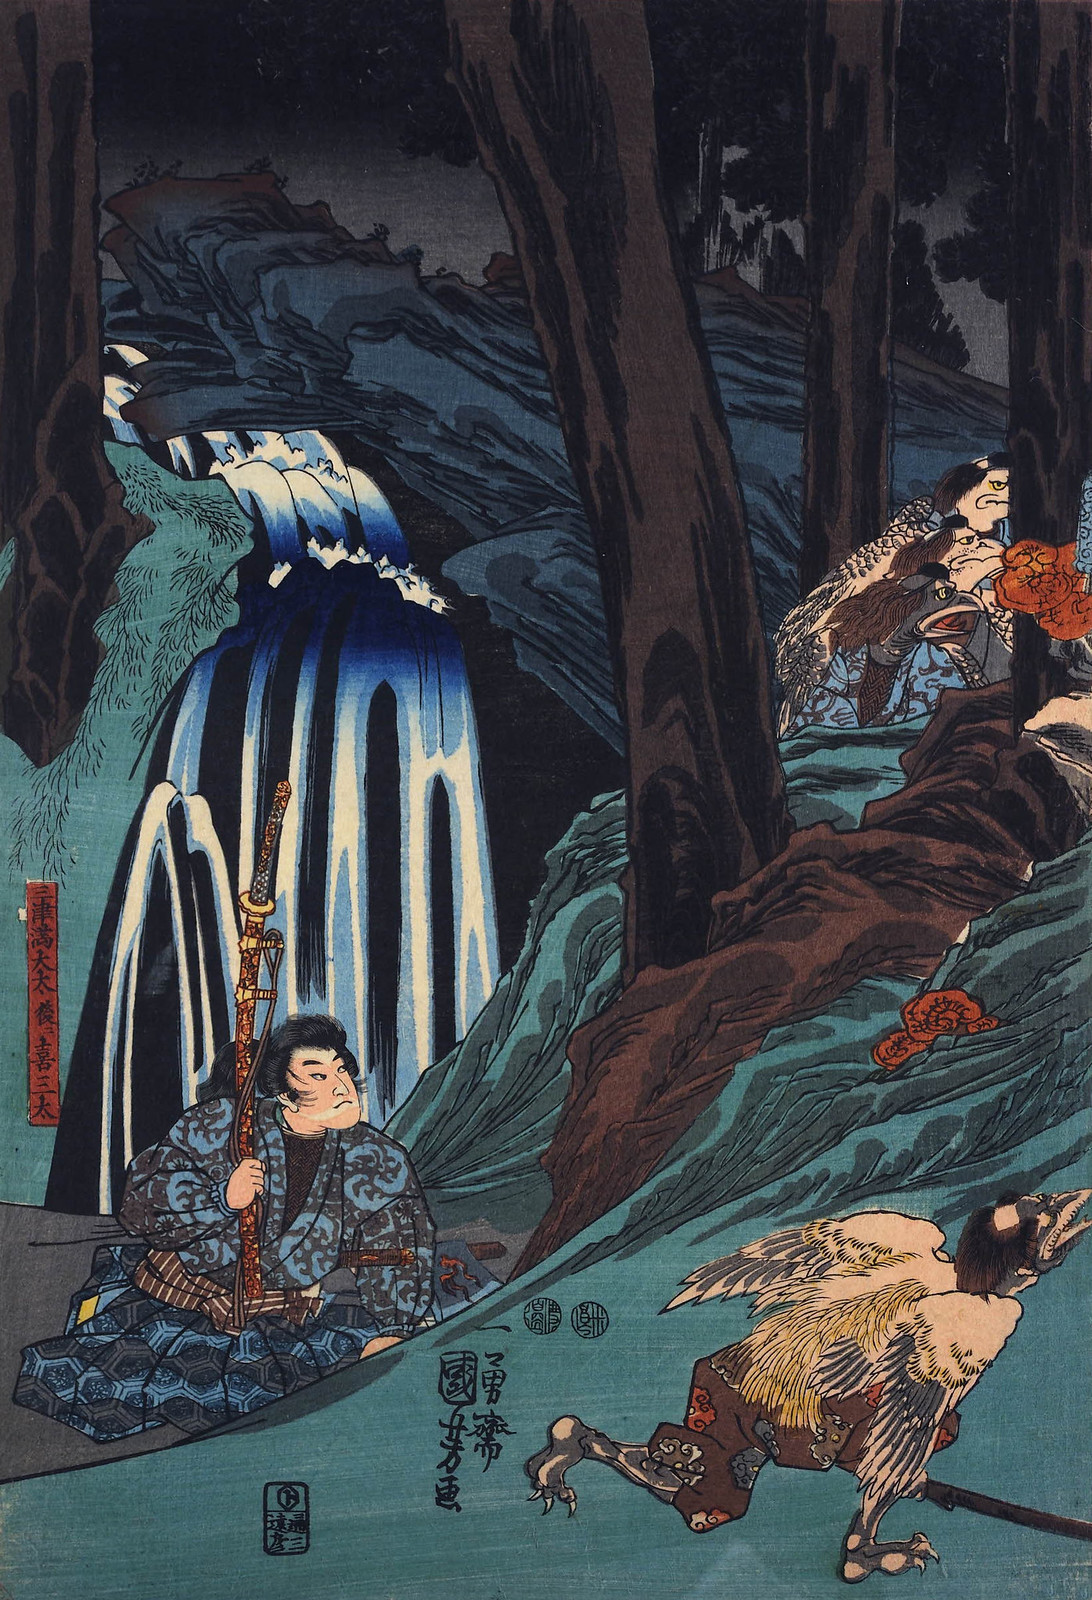 Utagawa Kuniyoshi - Sojobo, King of the Tengu, and Yoshitsune leaping in the air, 1847-52 (left panel)